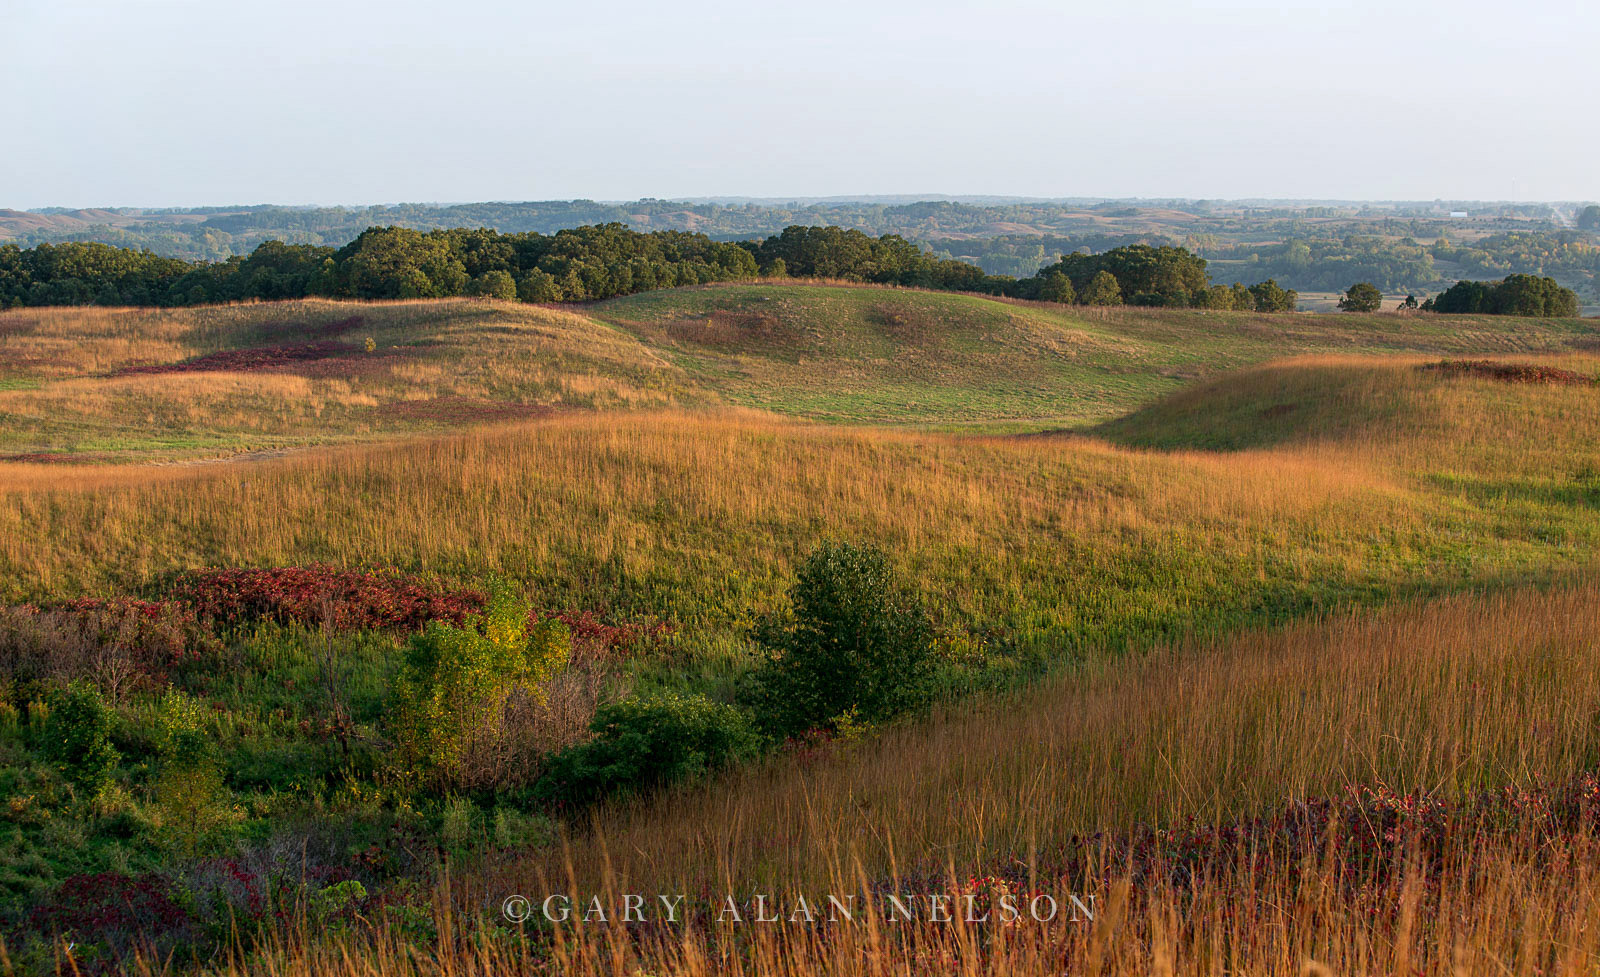 Glacial moraine and prairie grasses at the Nature Conservancy's Ordway Prairie, south central Minnesota